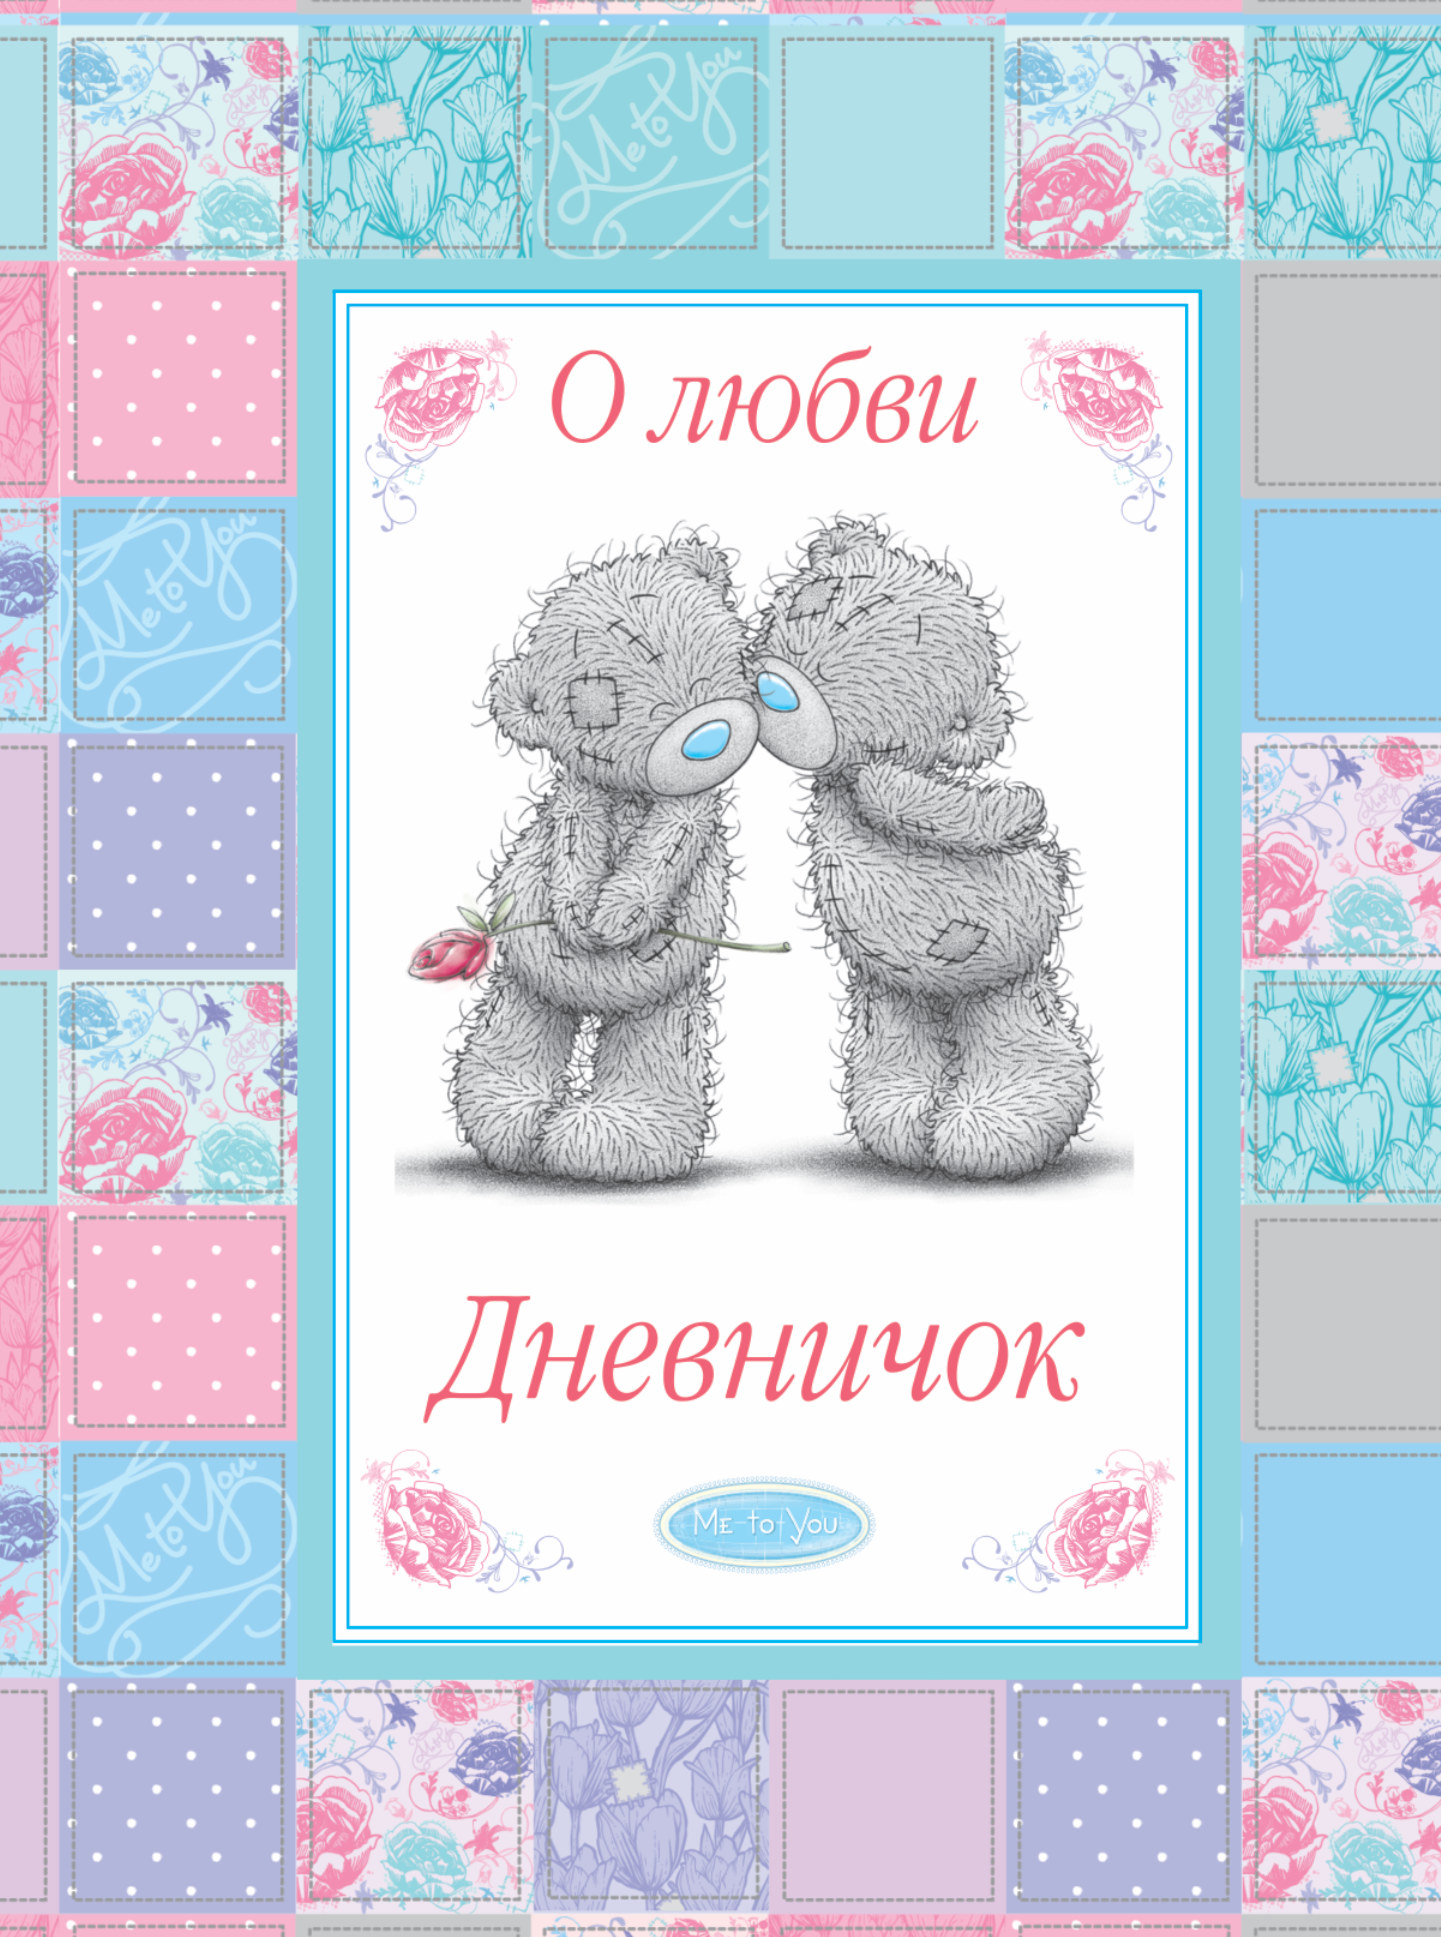 Me to You. Дневничок. О любви, ISBN 9785170846245, Издательство «АСТ», 2014, Me to you (Дневничок) , 978-5-1708-4624-5, 978-5-170-84624-5, 978-5-17-084624-5 - купить со скидкой